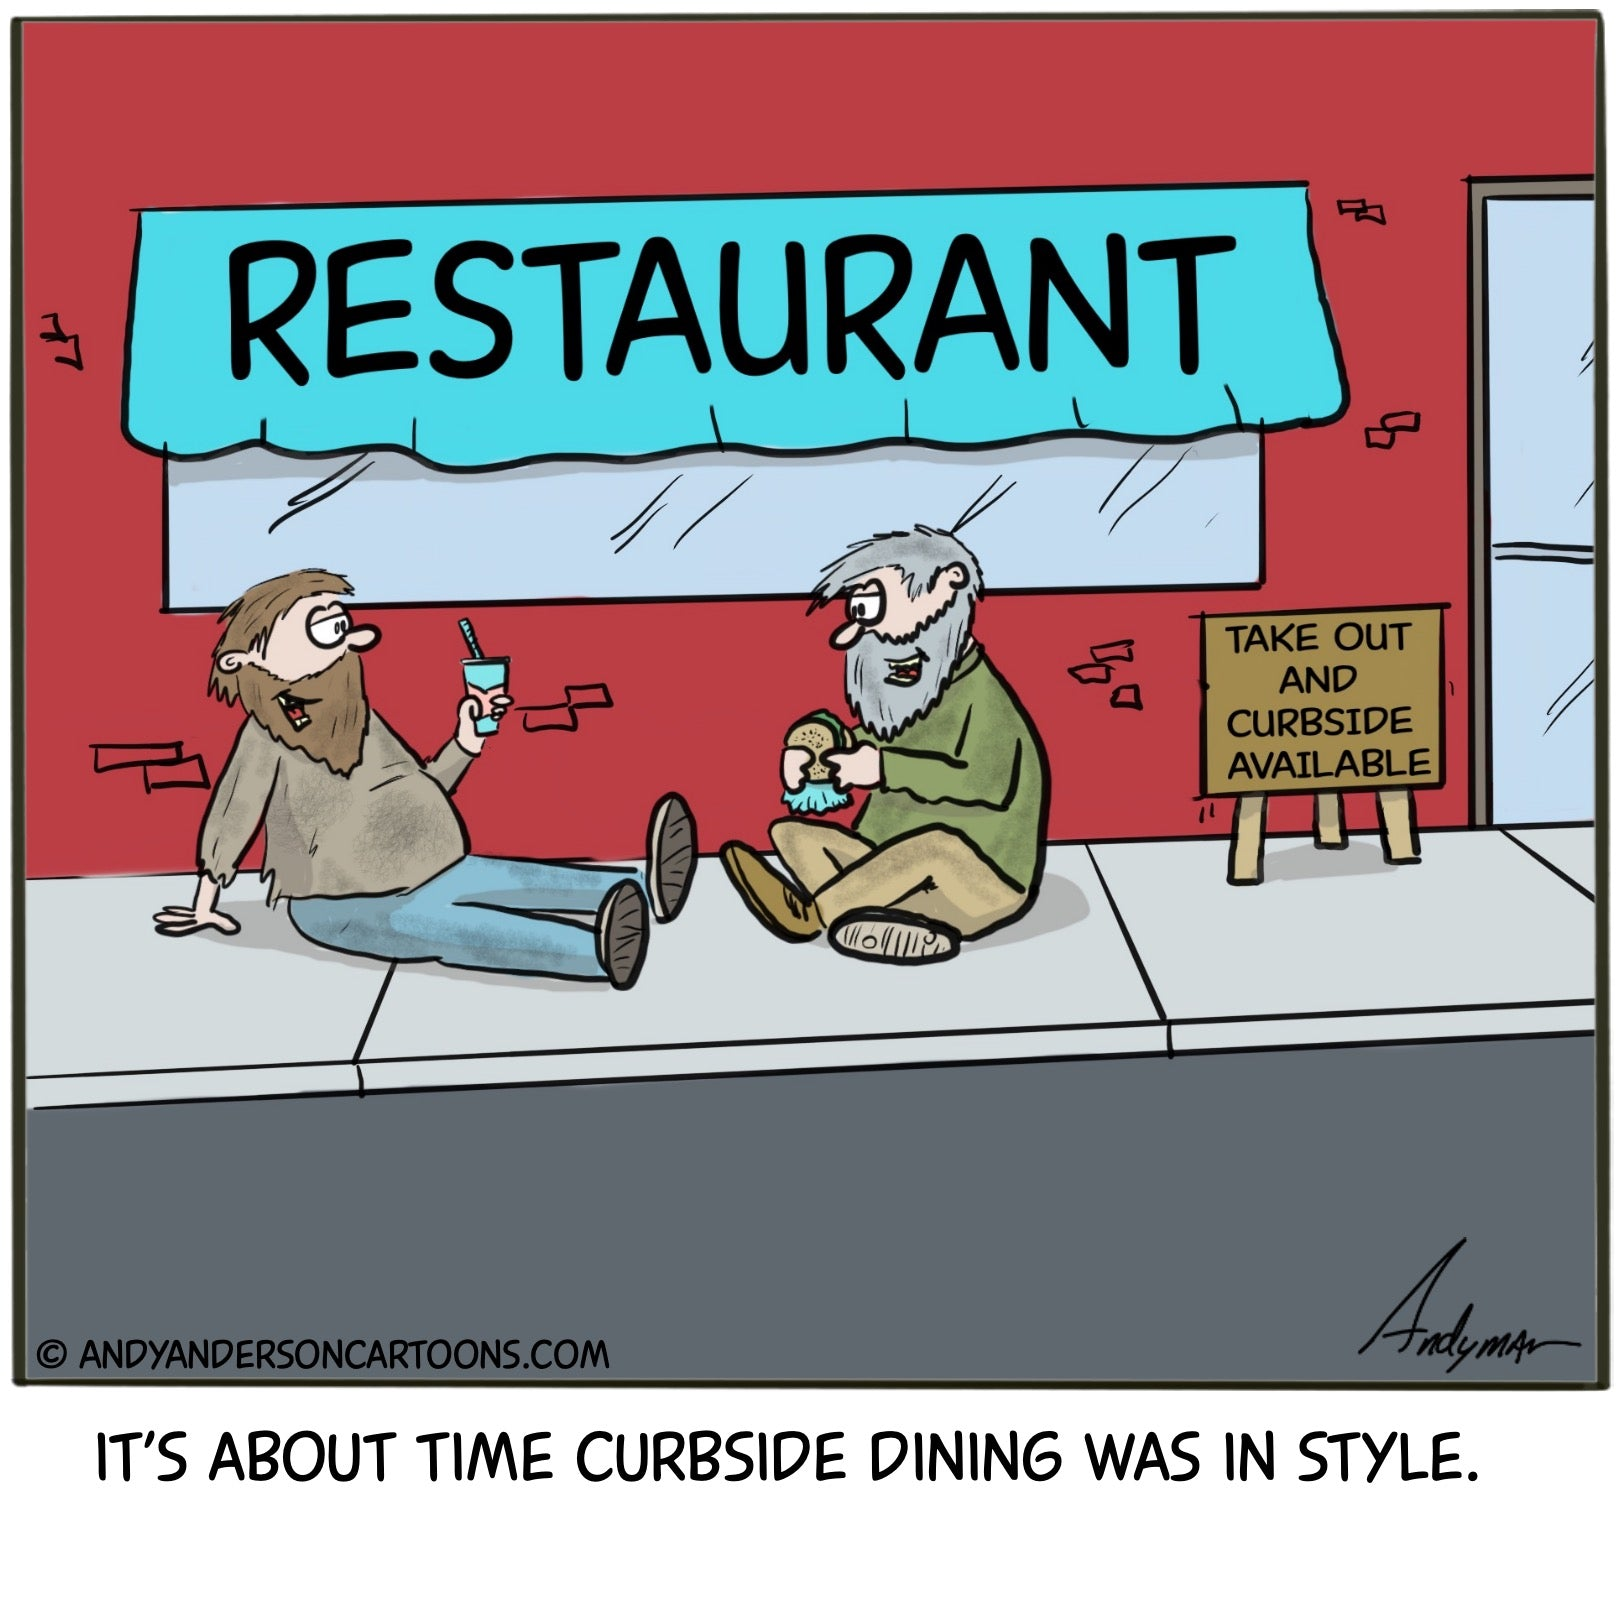 Cartoon about curbside dinning